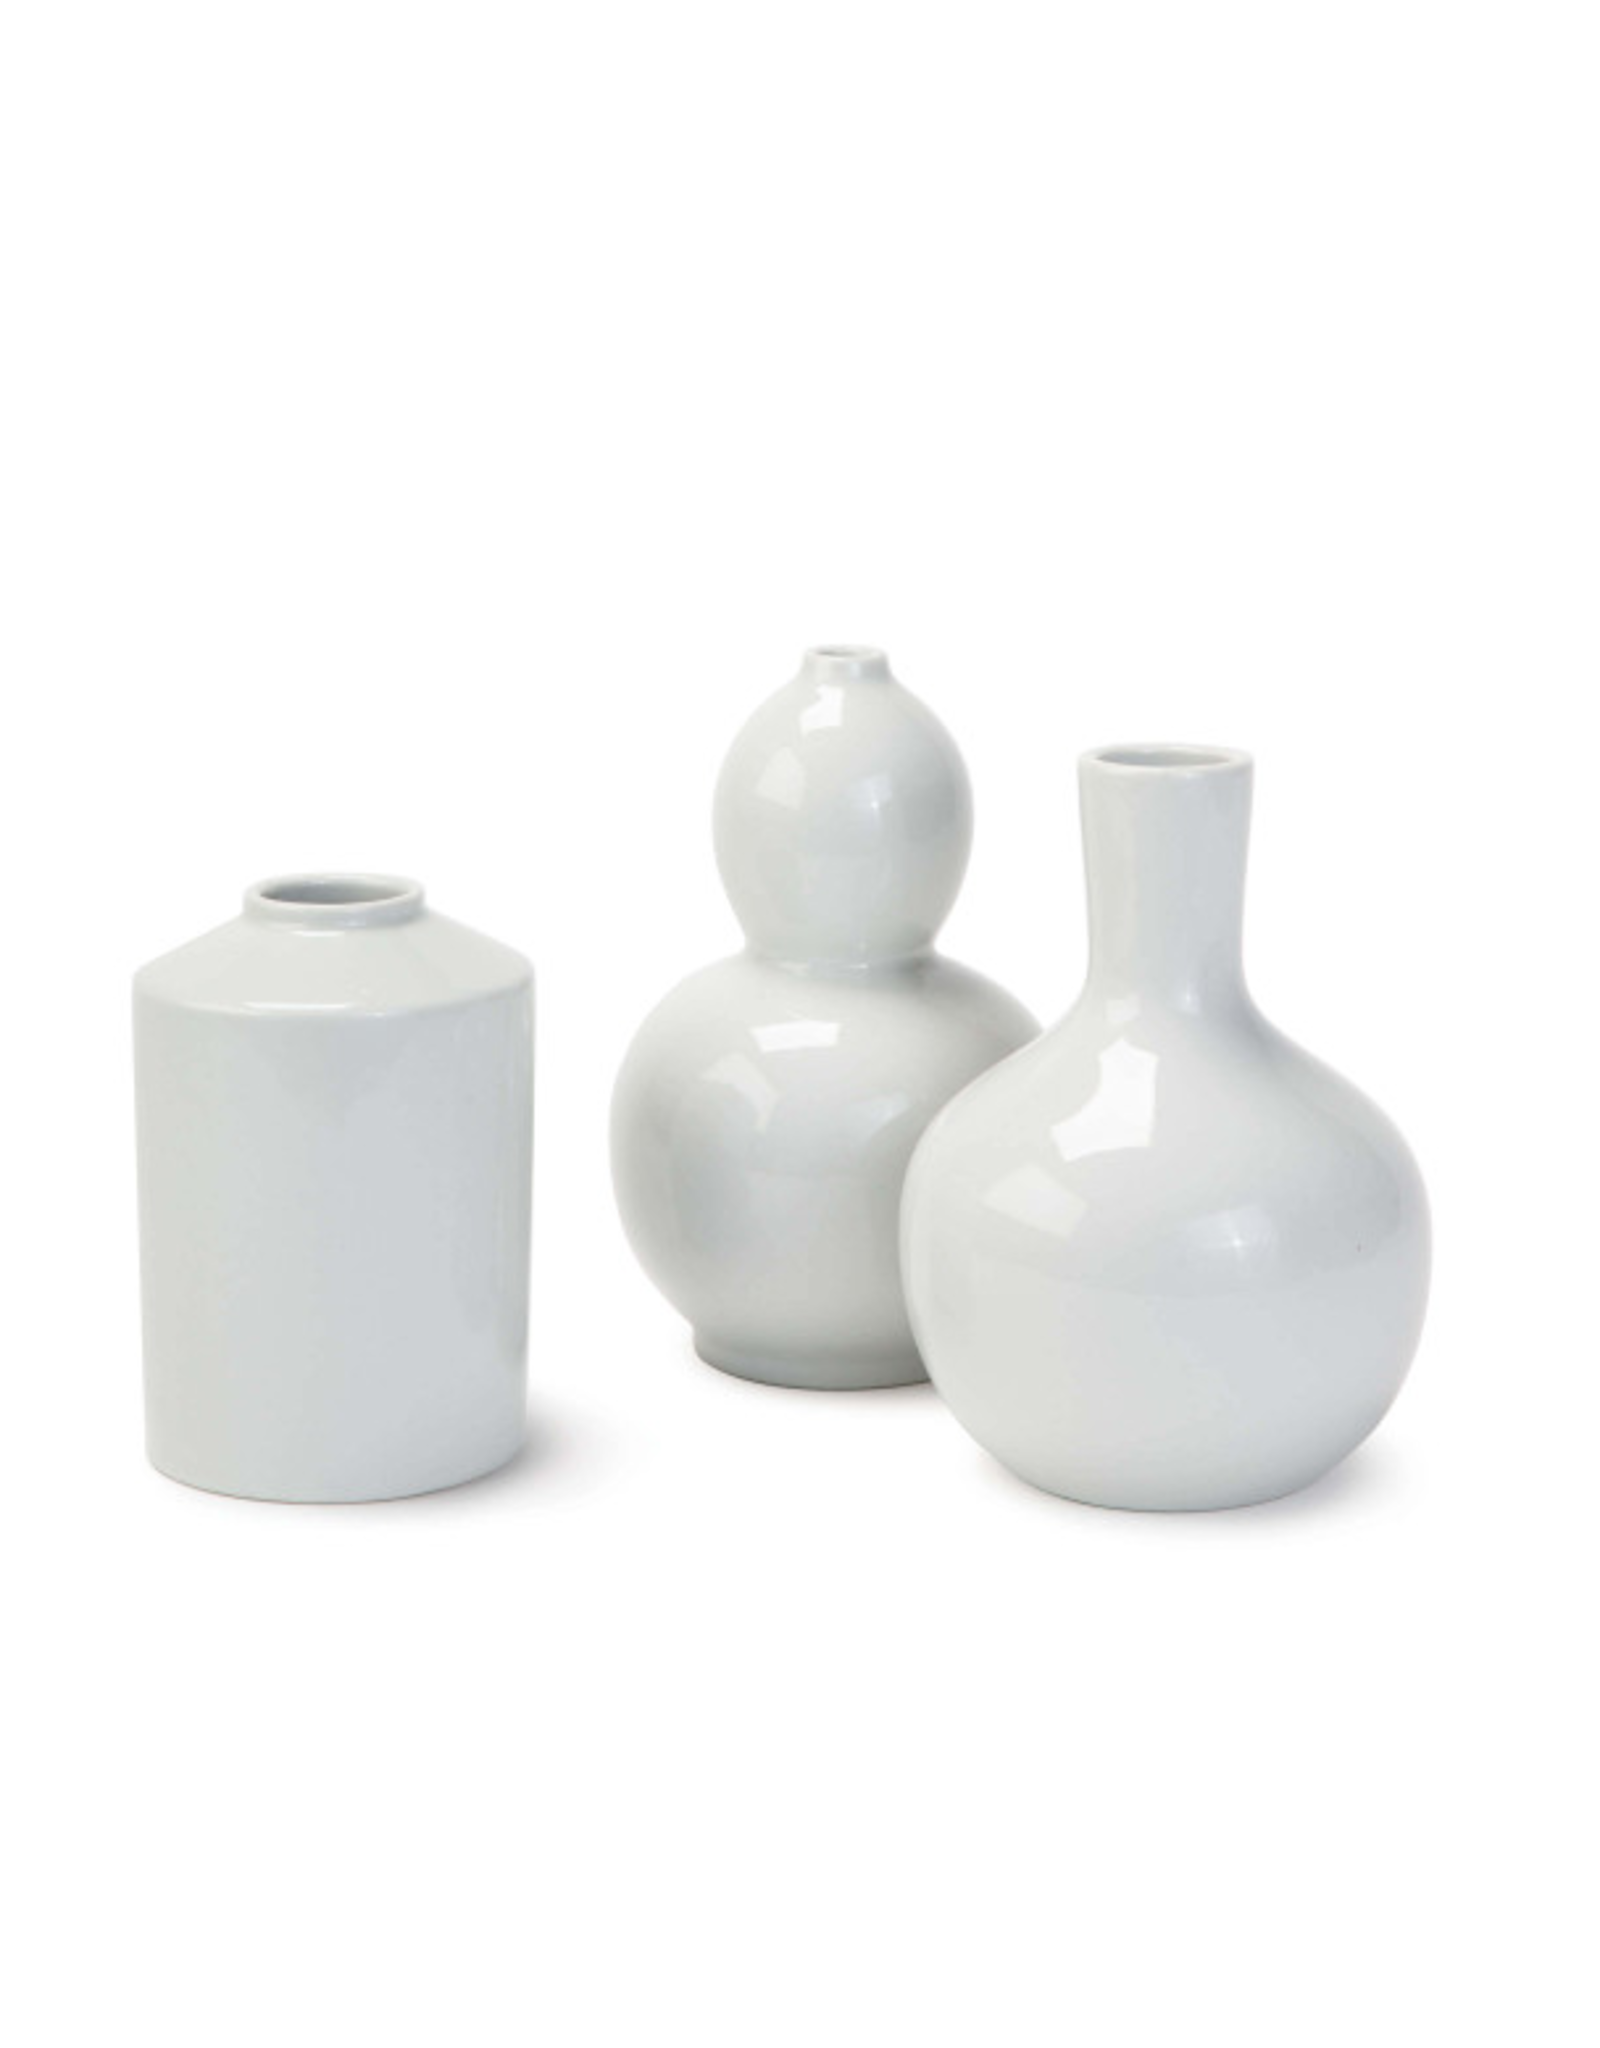 Blossom Ceramic Vase - 3 shapes